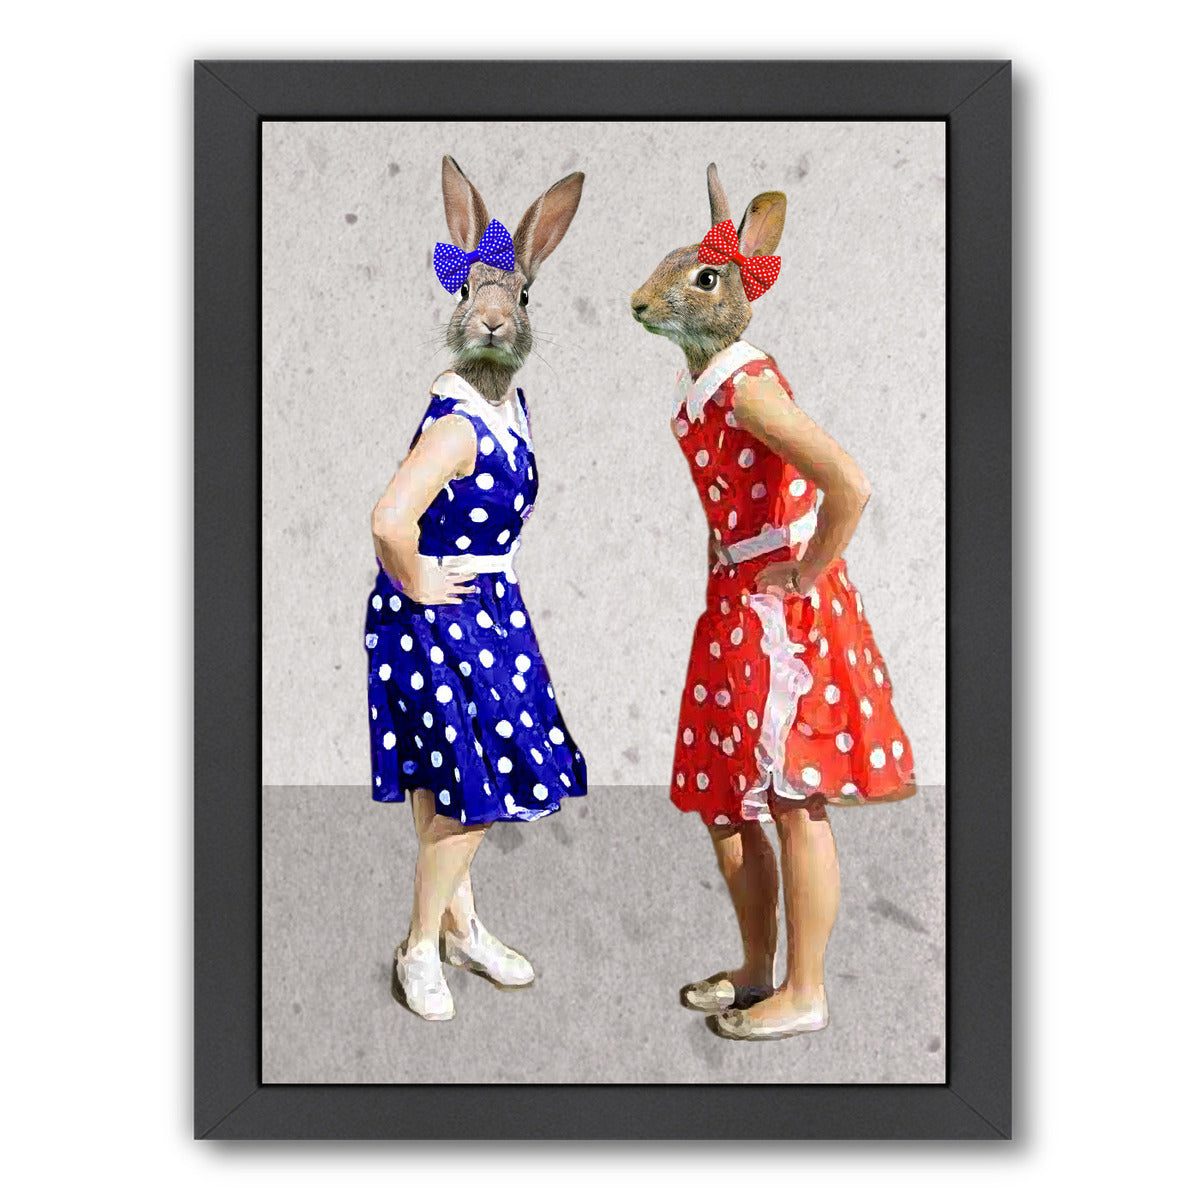 Rabbits Rock & Roll By Coco De Paris - Black Framed Print - Wall Art - Americanflat